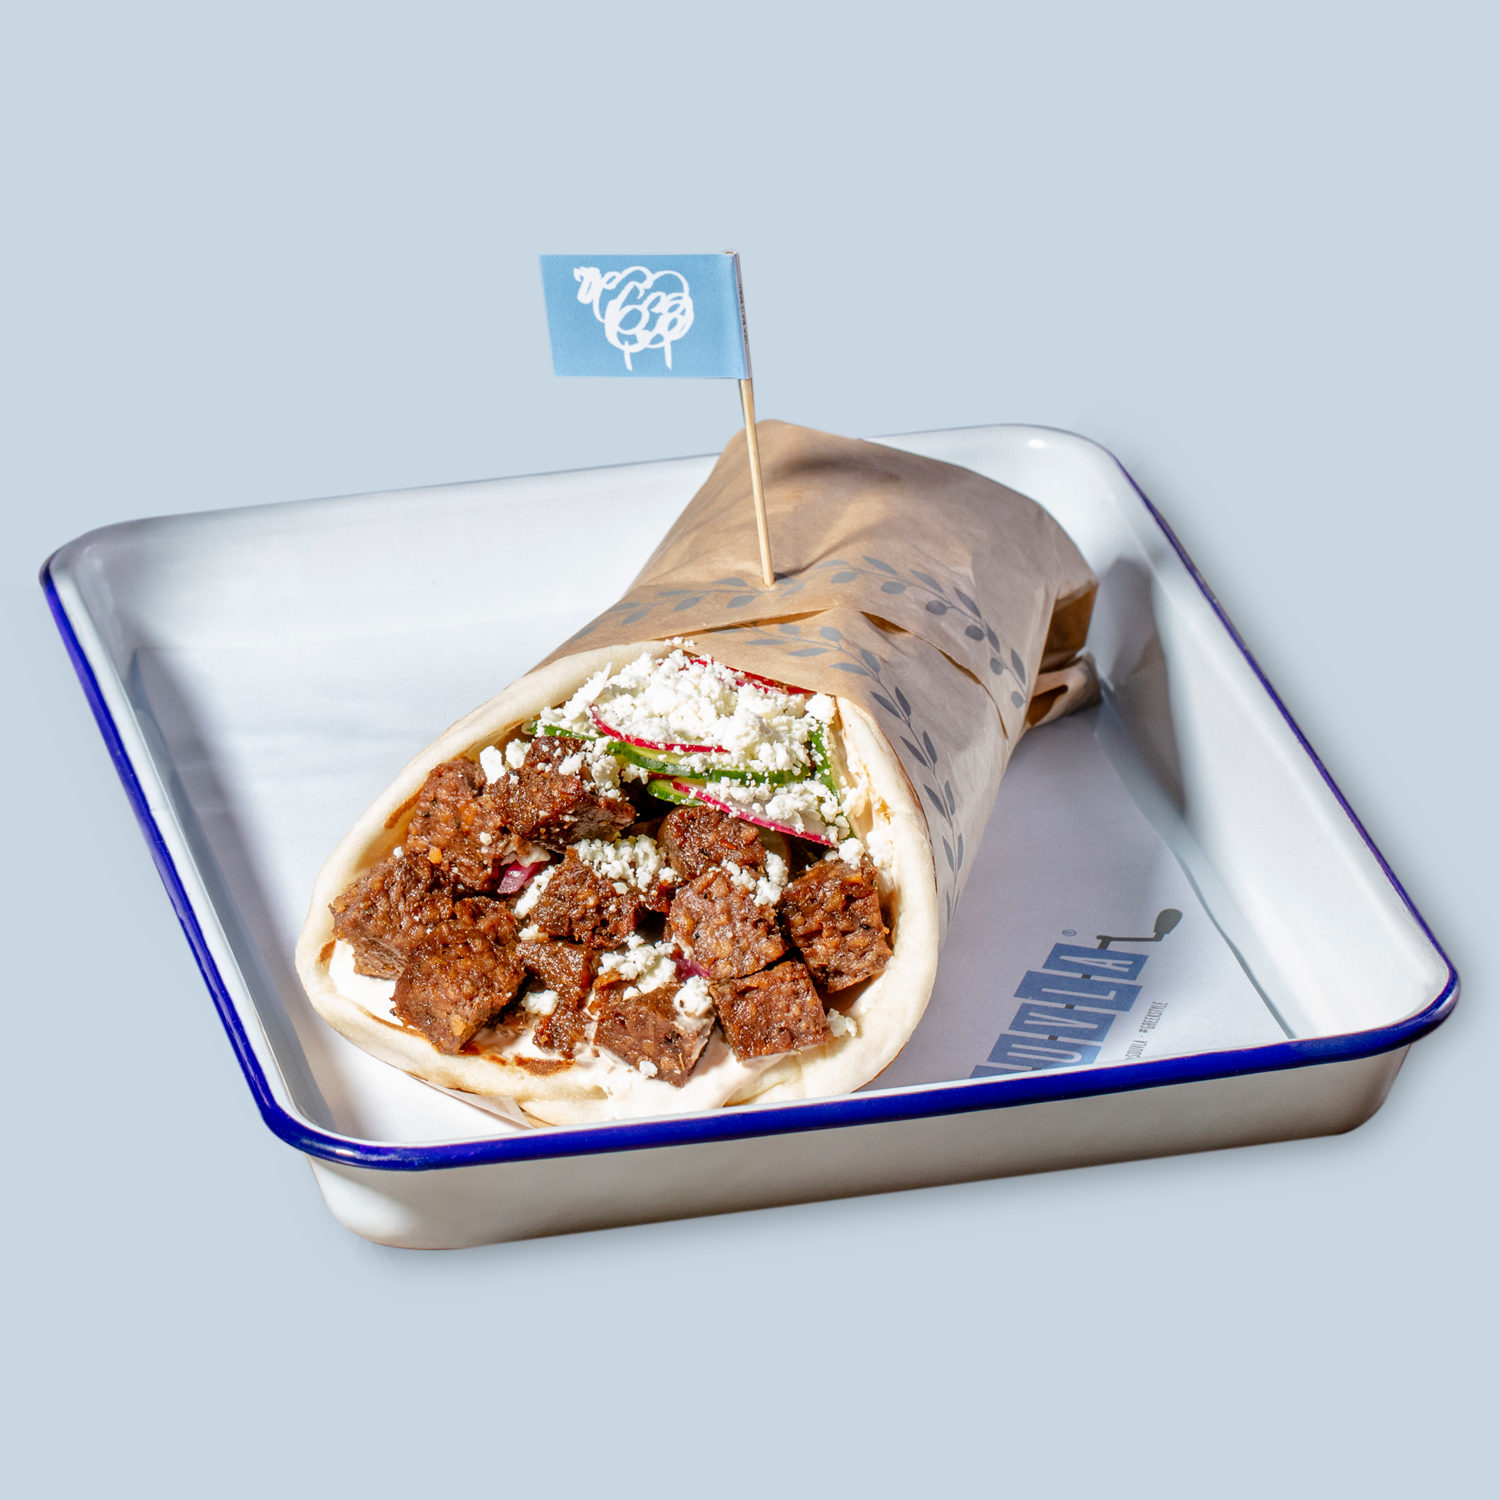 A Souvla wrap filled with their new lab-grown lamb